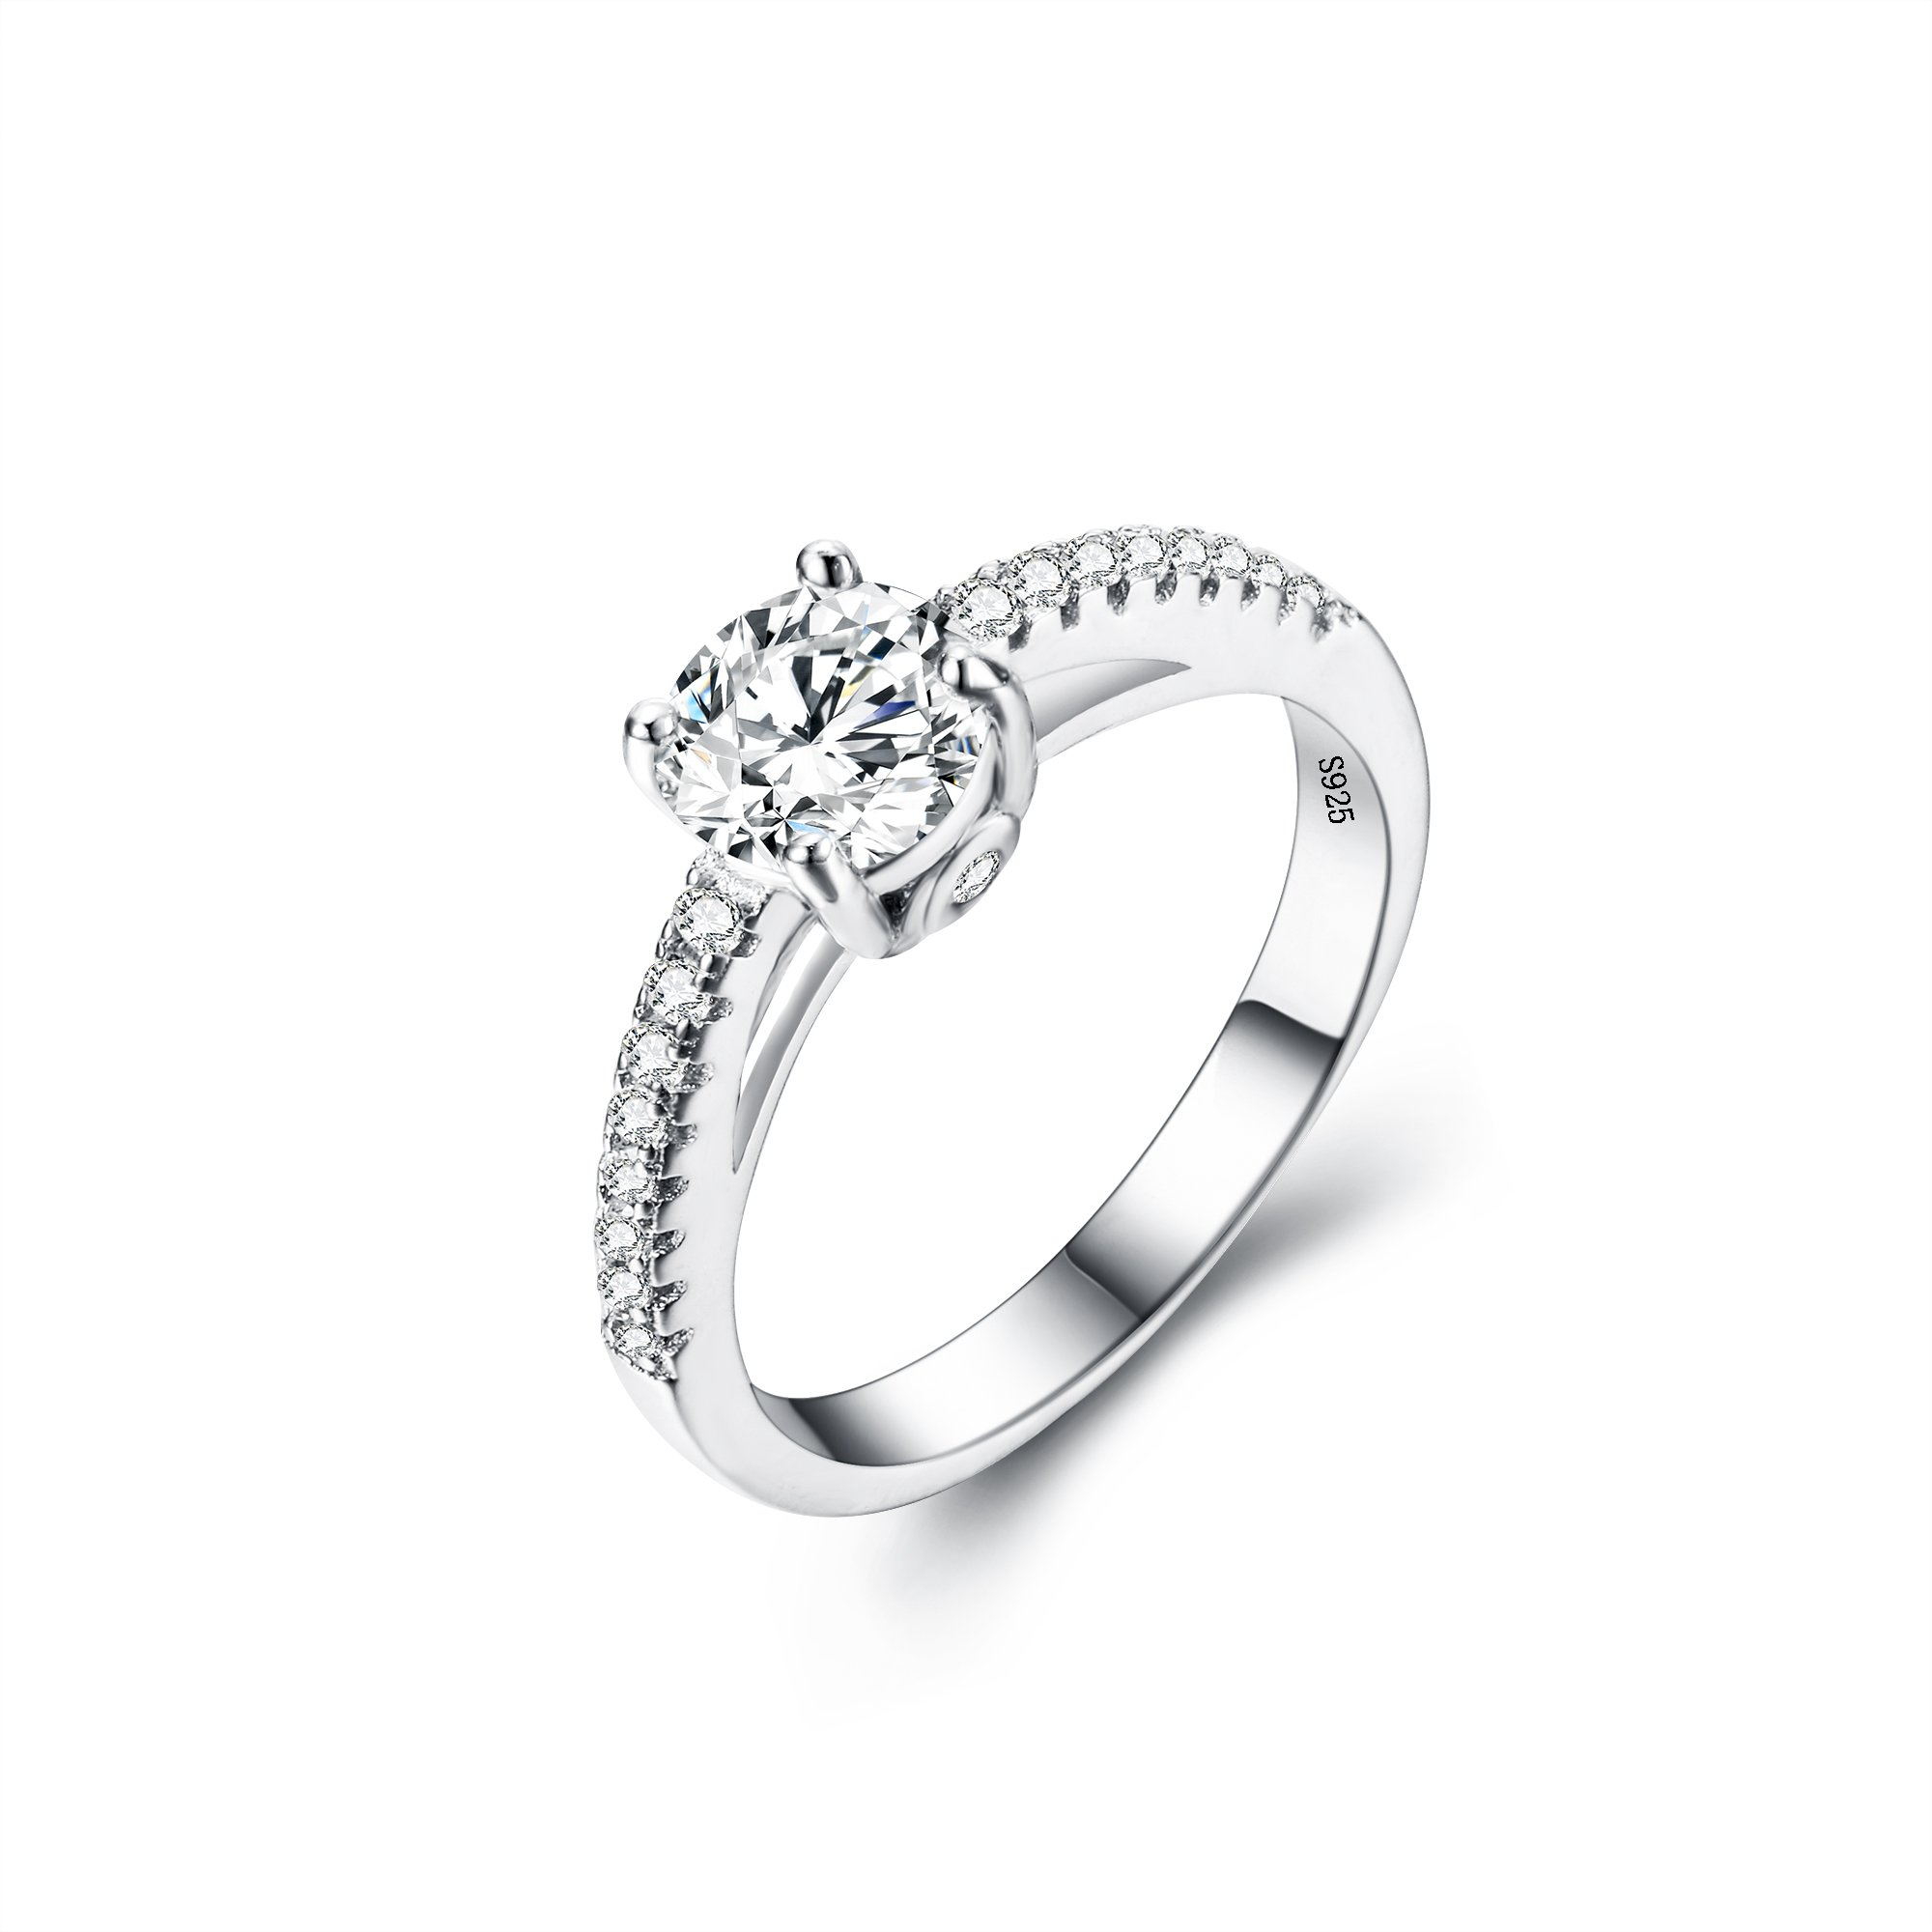 EVER FAITH 925 Sterling Silver Classical Round Cut .25ct Cubic Zirconia Engagement Ring Clear - Size 8